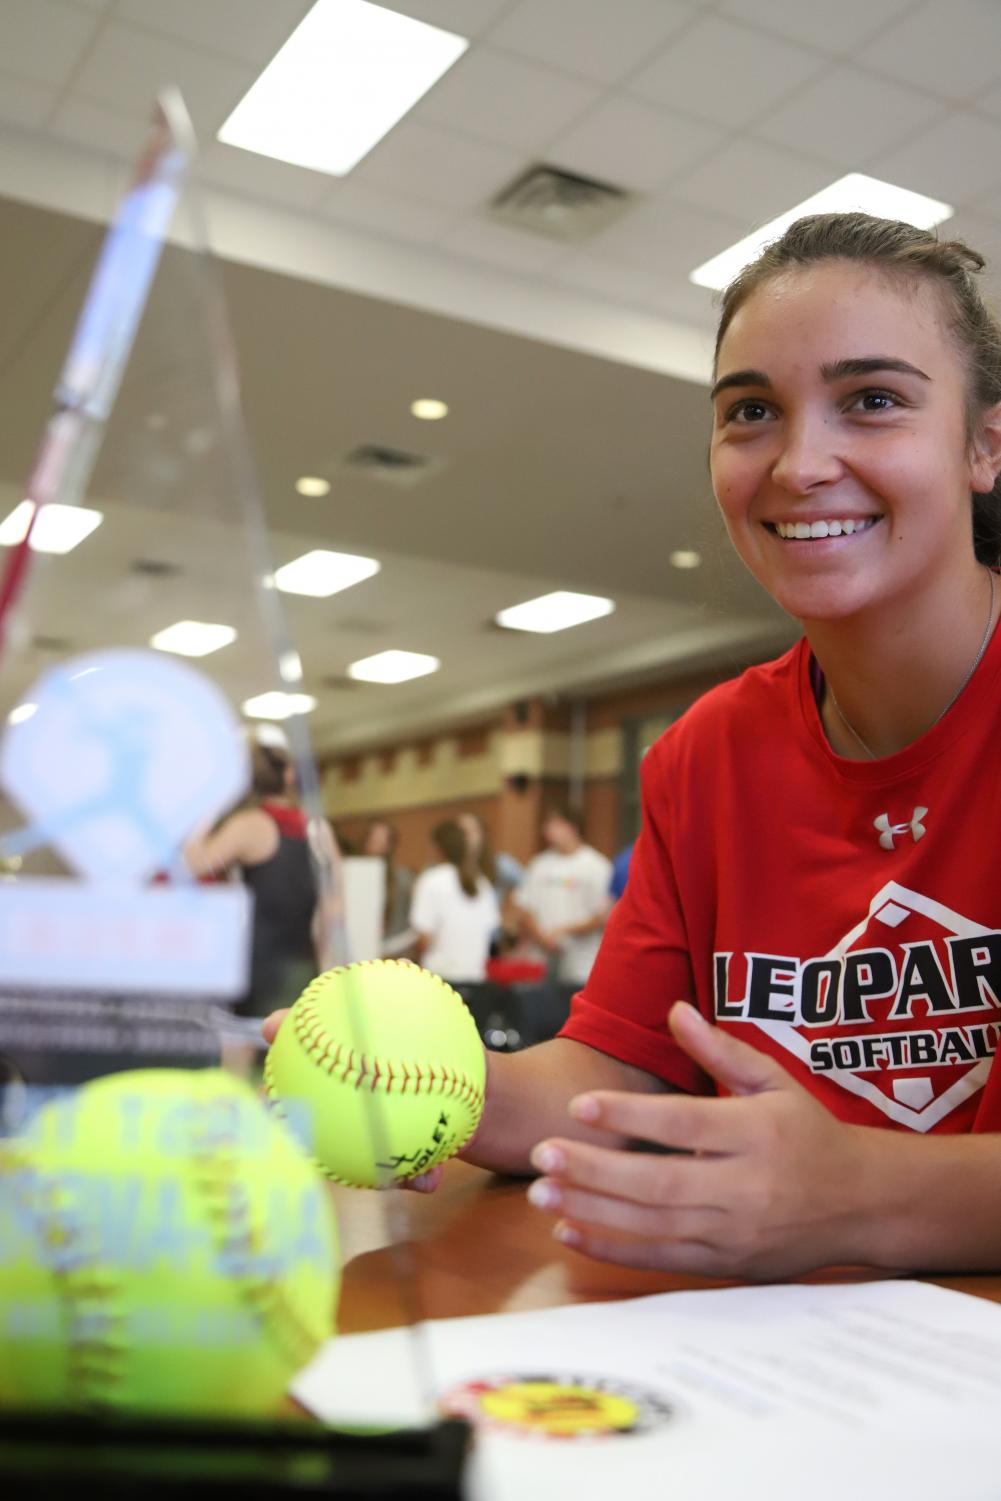 Senior+Carlee+Schaeffer+talks+to+freshman+Jade+Owens+about+the+Lovejoy+Softball+program.+Schaeffer+plays+second+base+for+the+Lady+Leopards+and+will+be+entering+her+fourth+and+final+year+of+playing+on+the+varsity+softball+team.